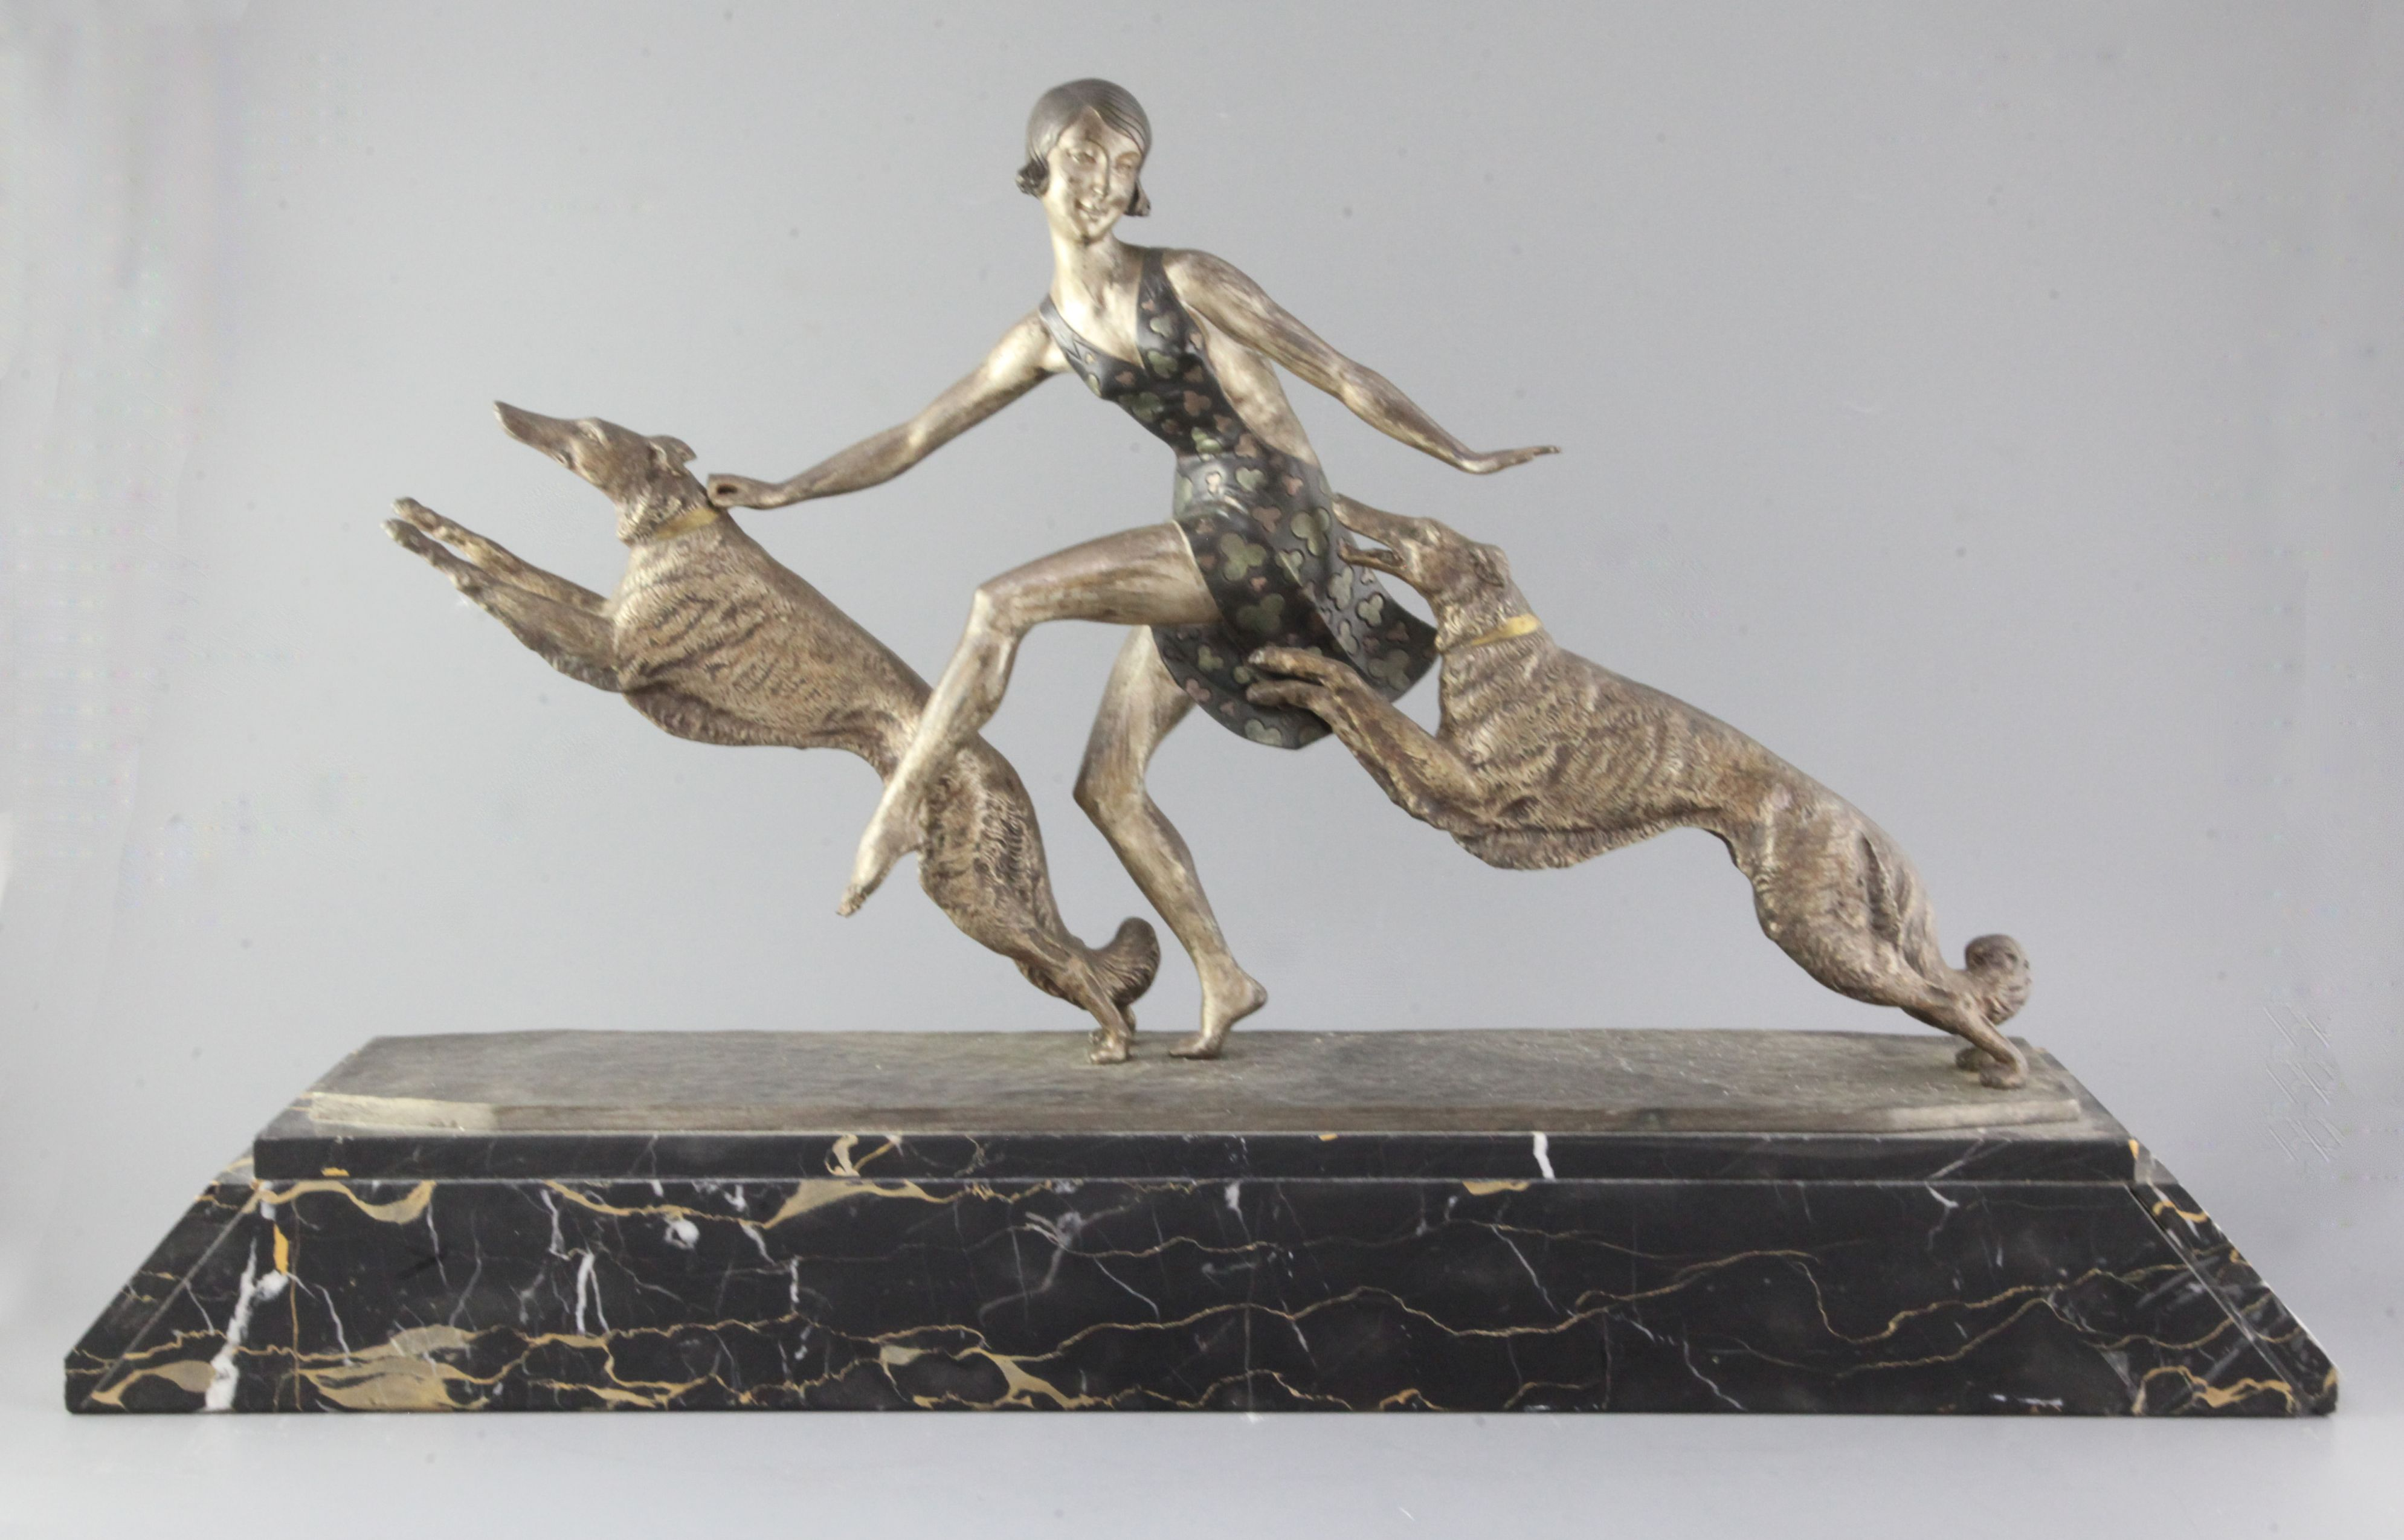 Lot 59 - Jean Lormier (French 19th/20th century). An Art Deco patinated bronze group of a young lady with a